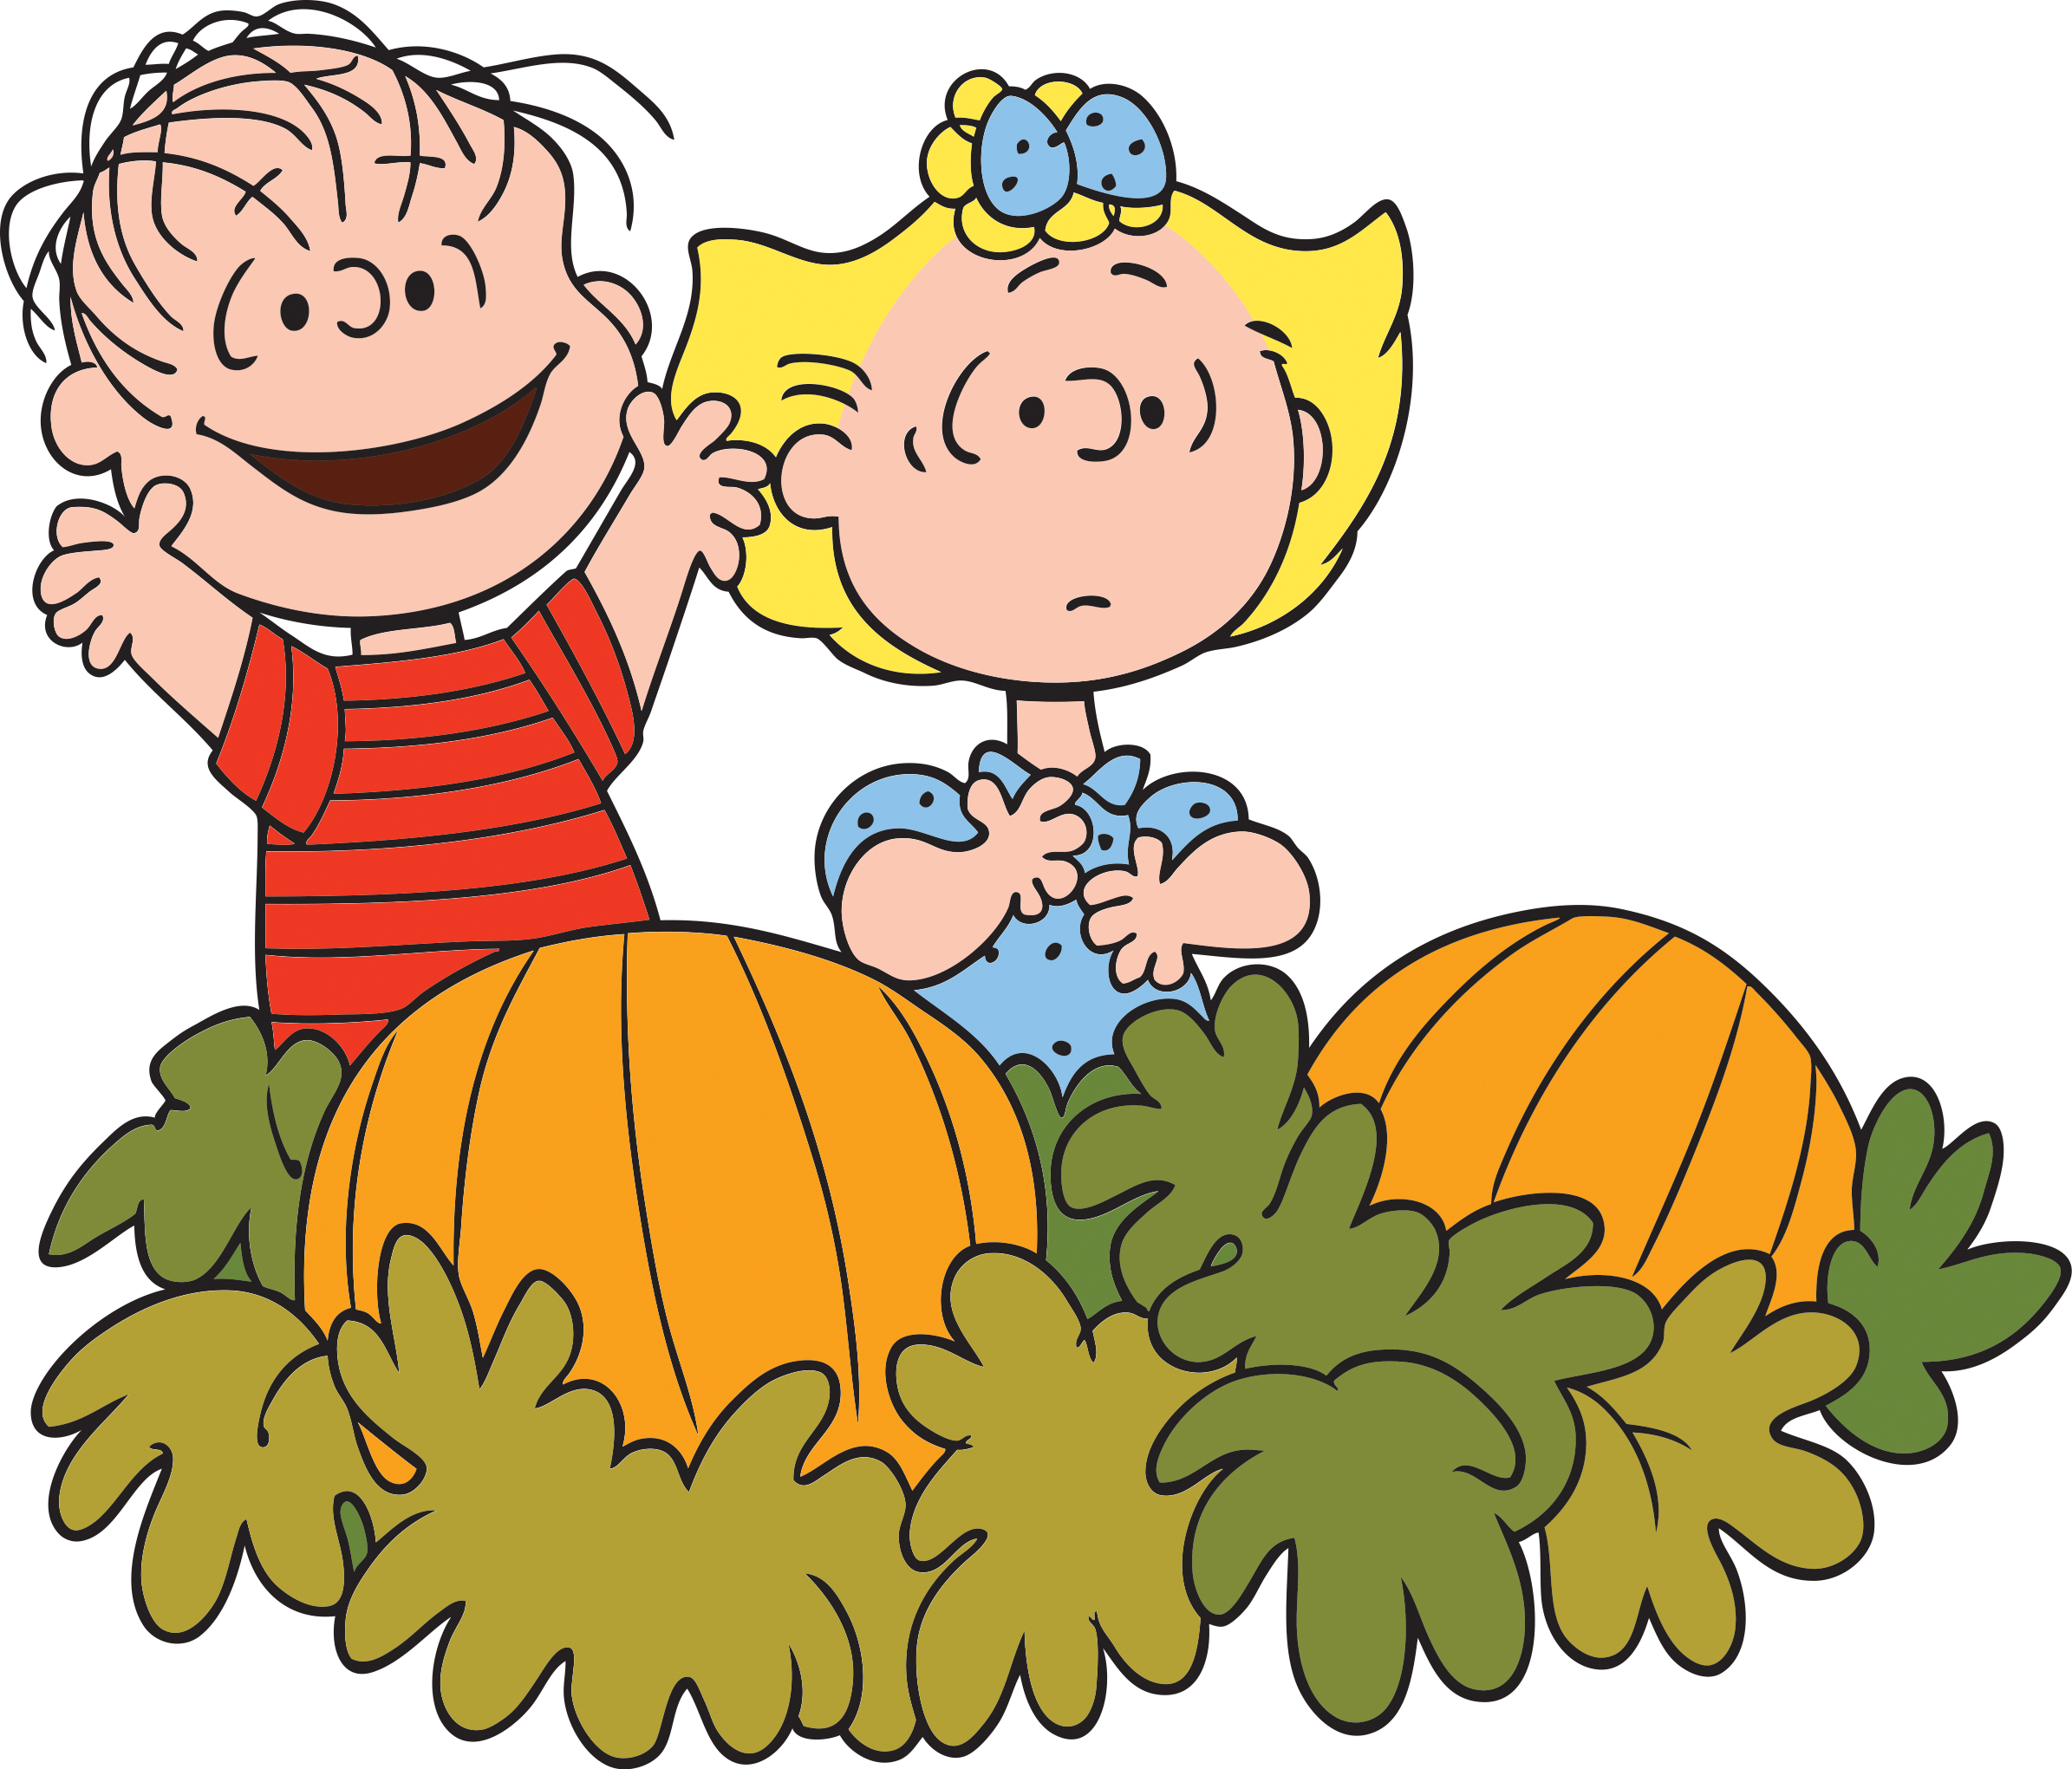 2390x2041 It's The Great Pumpkin, Peanuts Fans, Bringing Joy For 50 Years